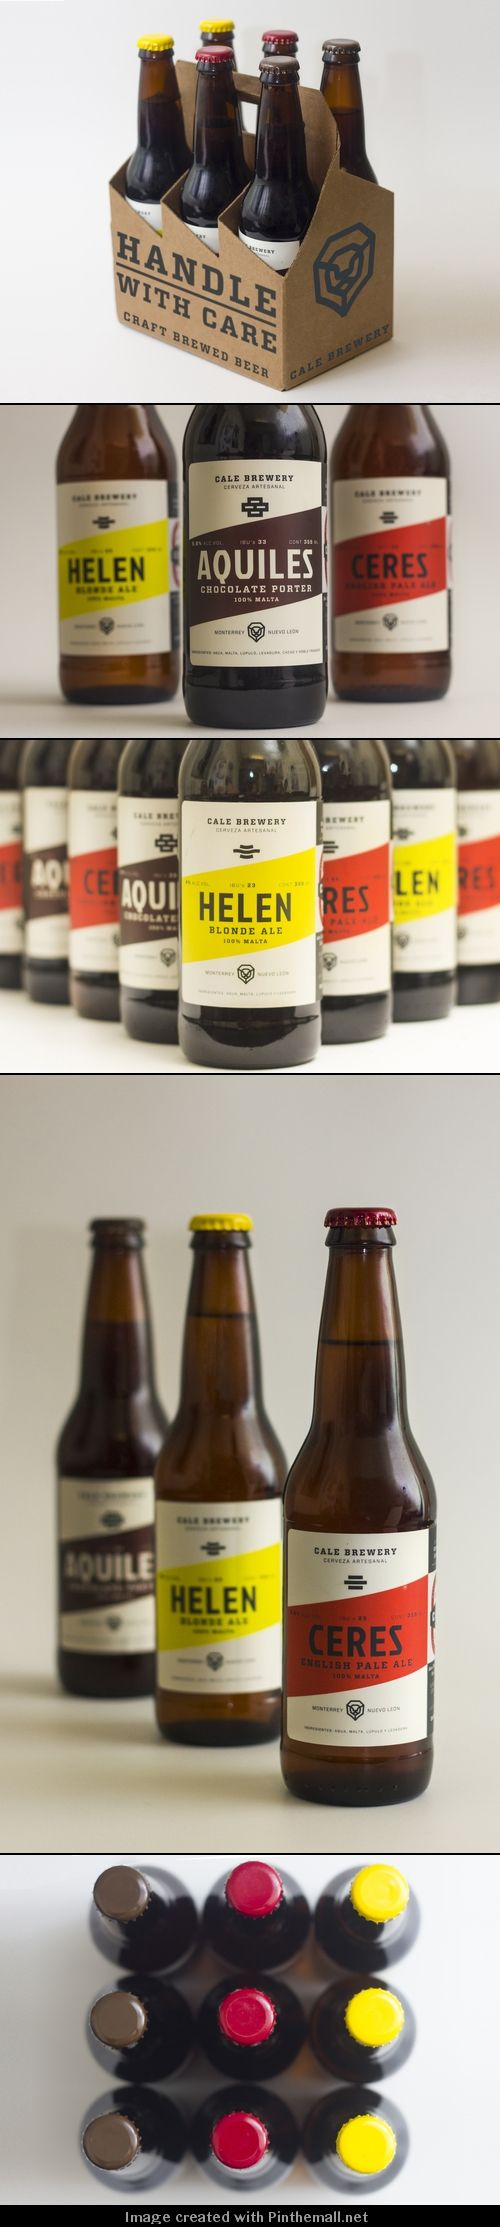 Cale Brewery | Designed by Suizopop, Cale Brewery is a craft beer company from Monterrey, México. PD